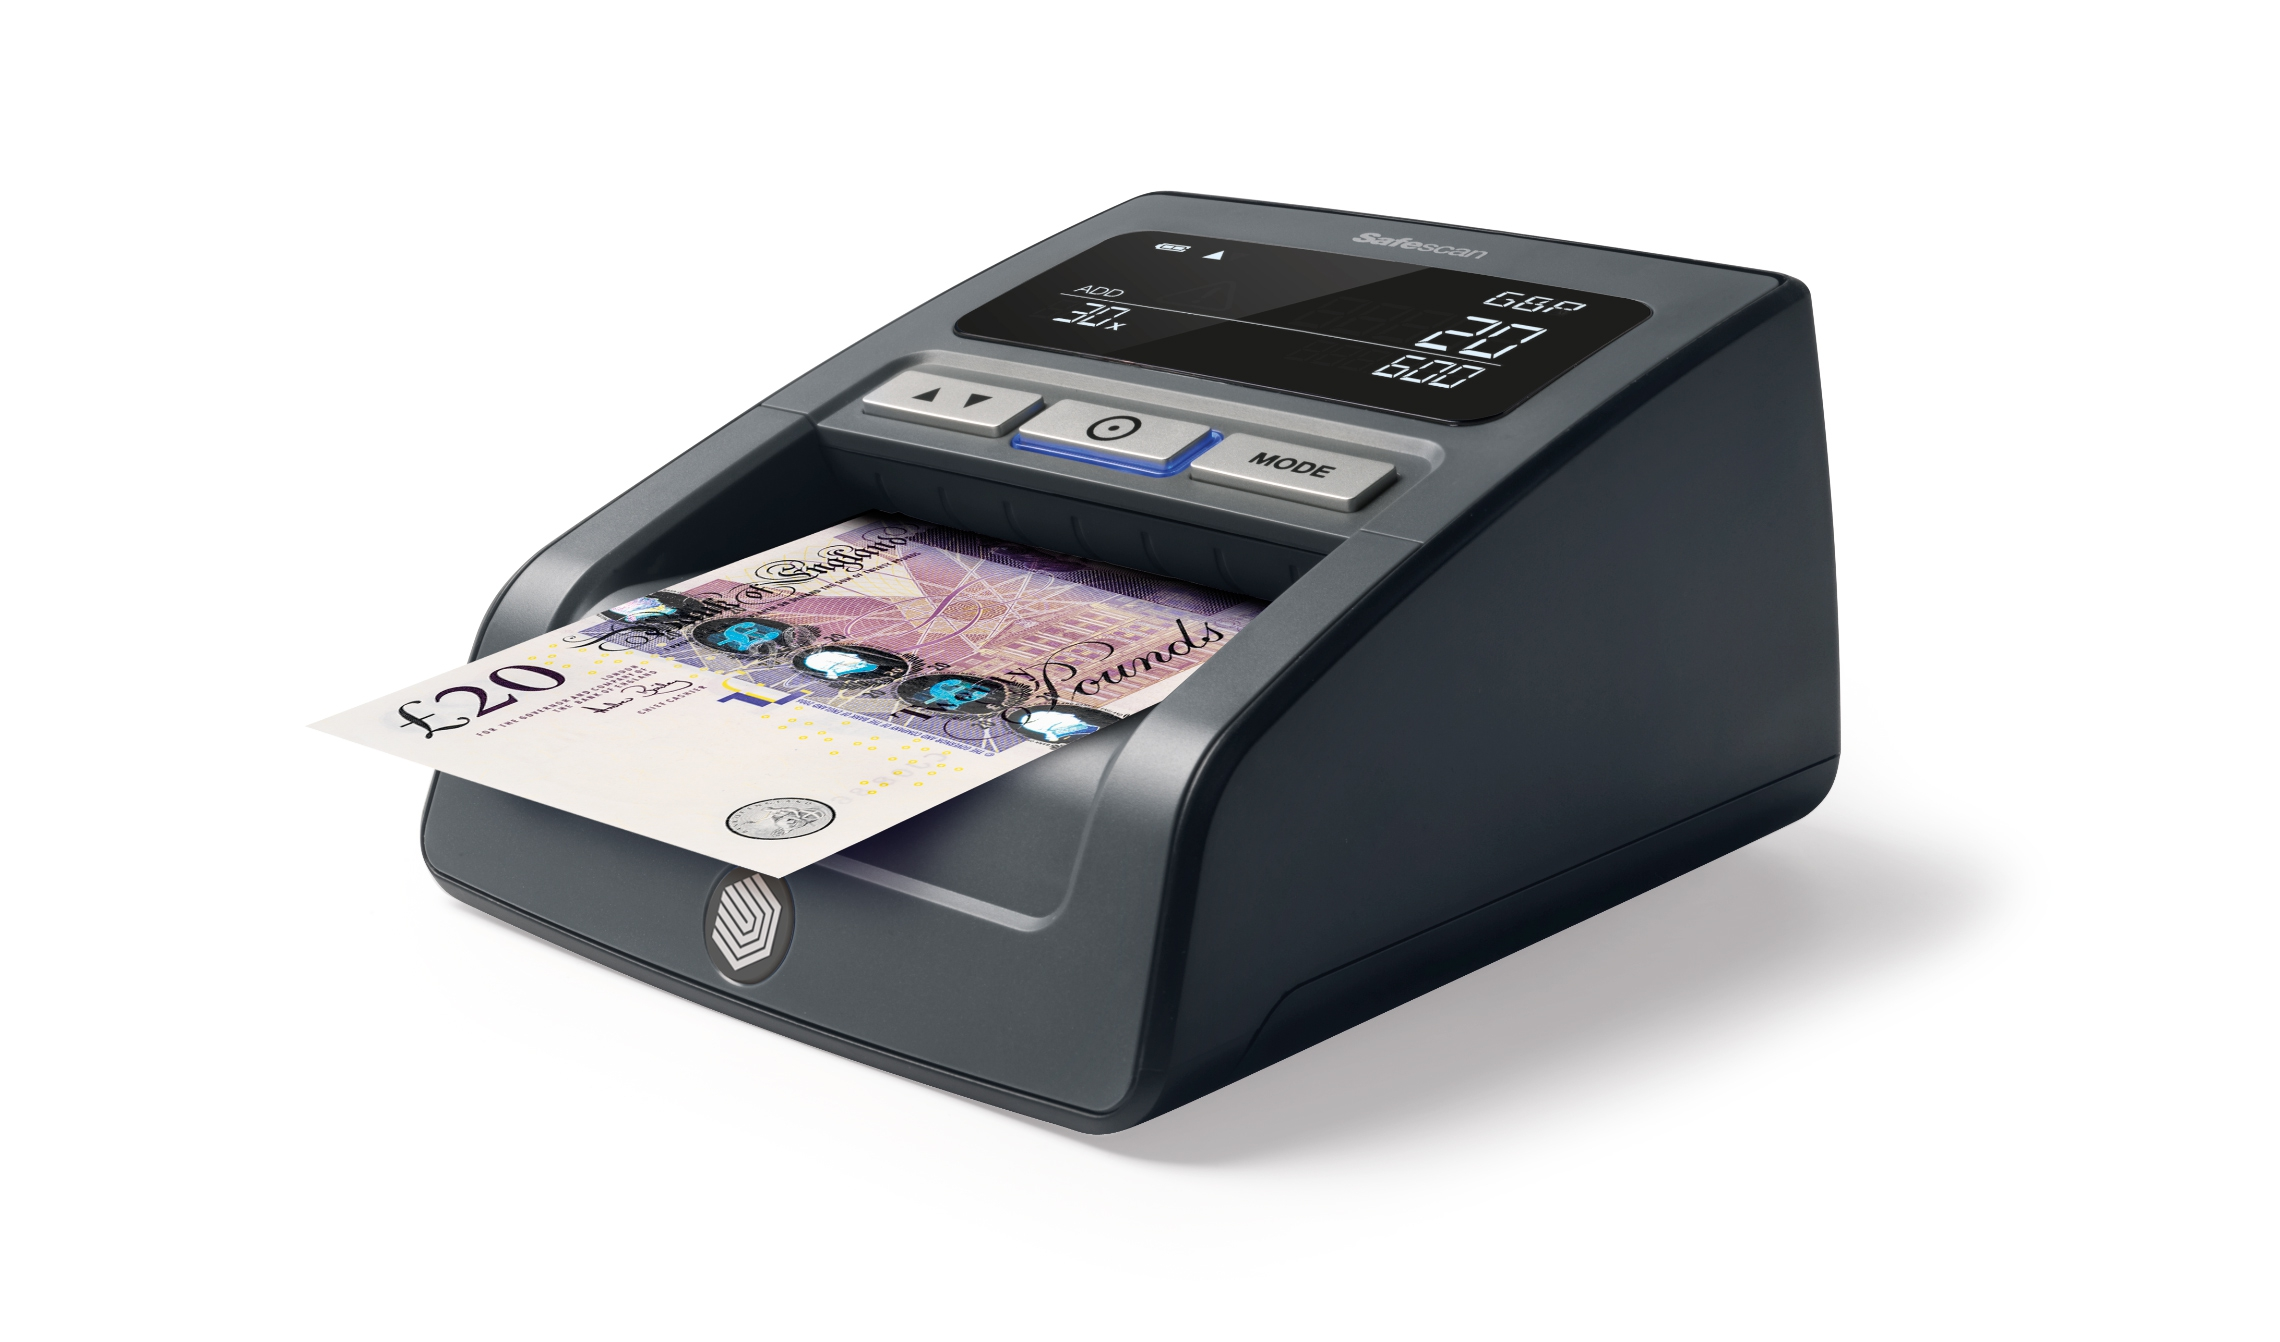 safescan-155-s-black-counterfeit-detector